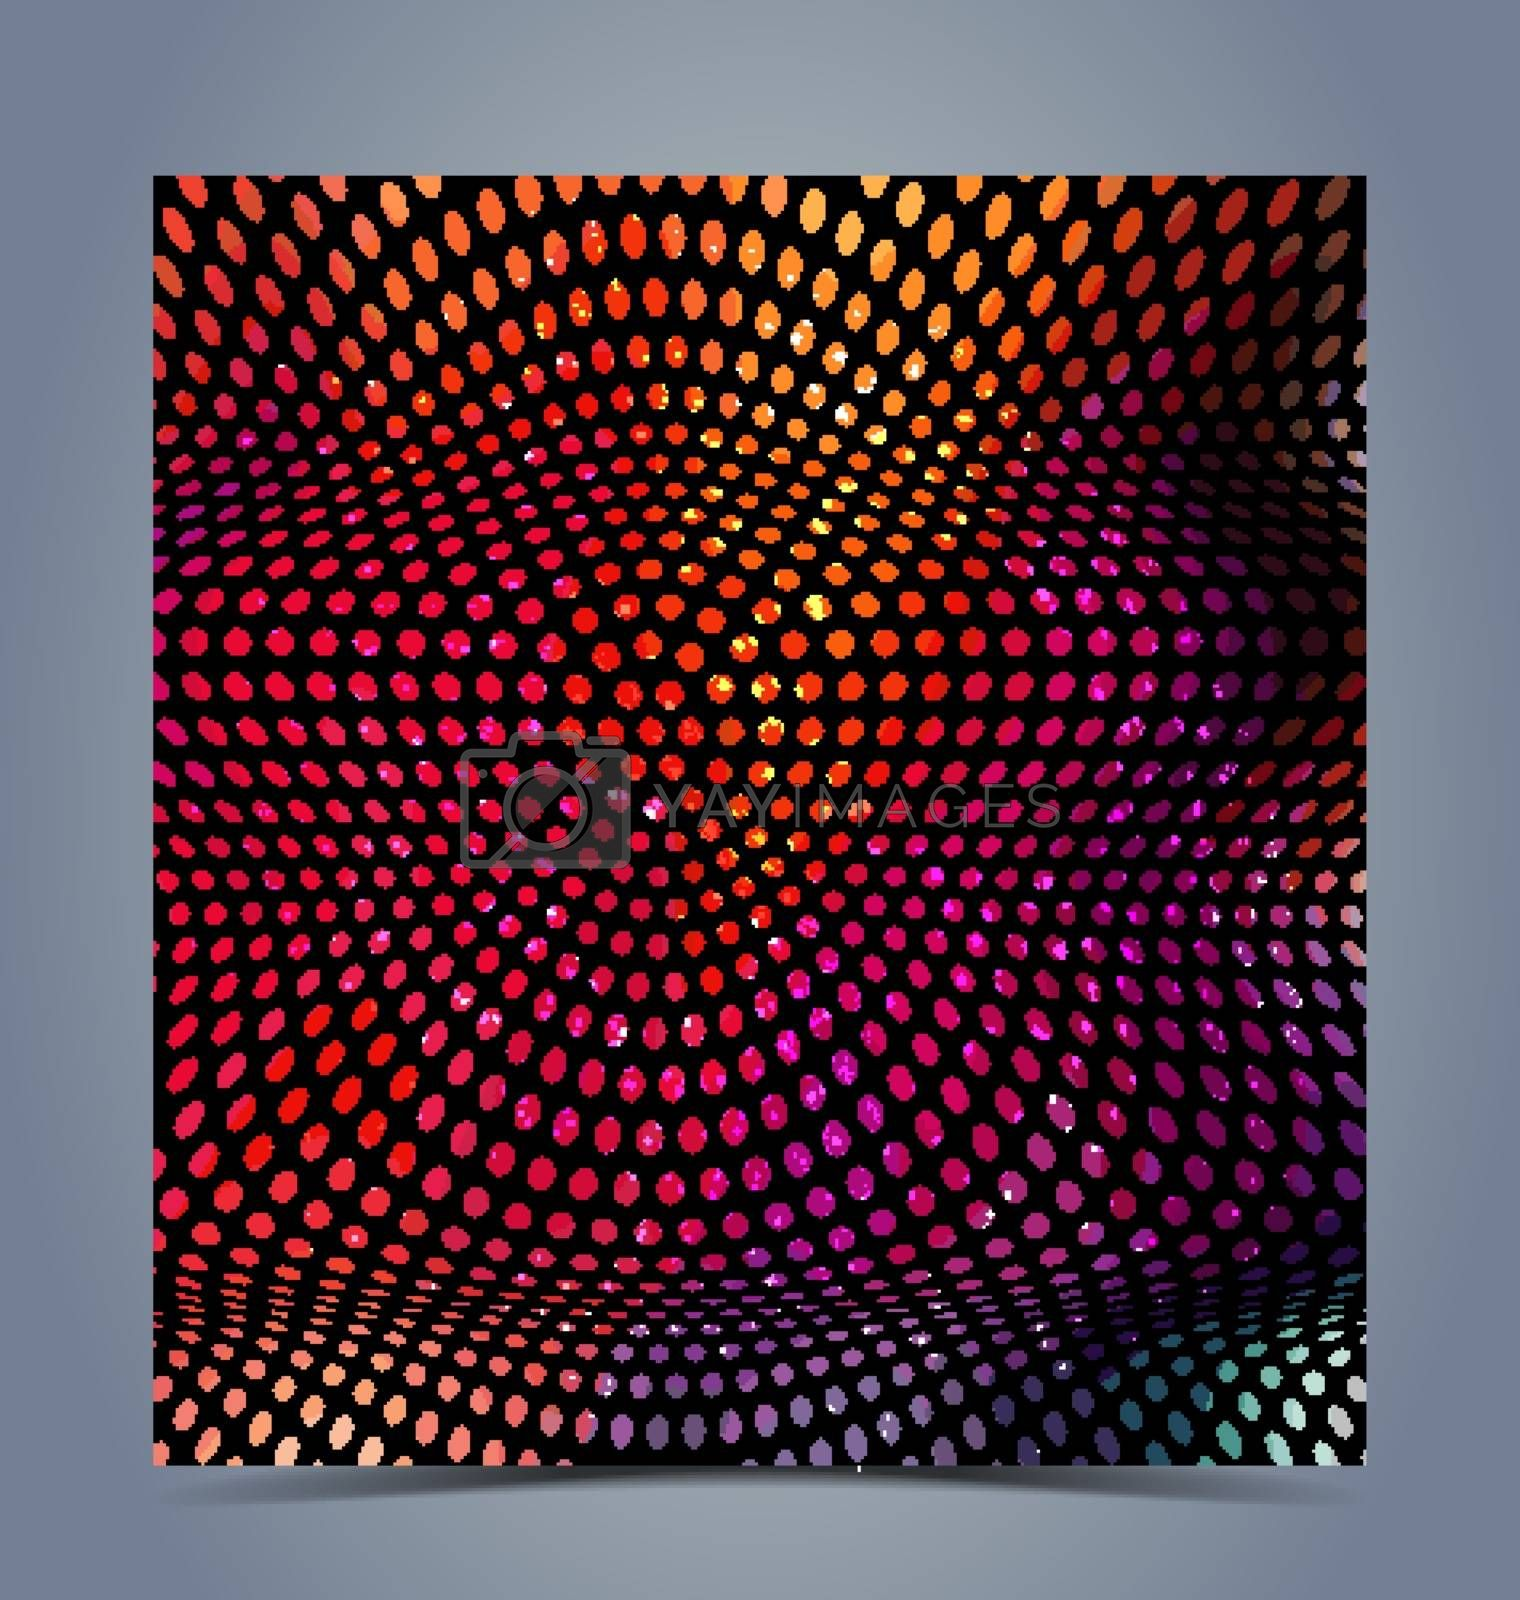 Abstract halftone colorful background for creative design work